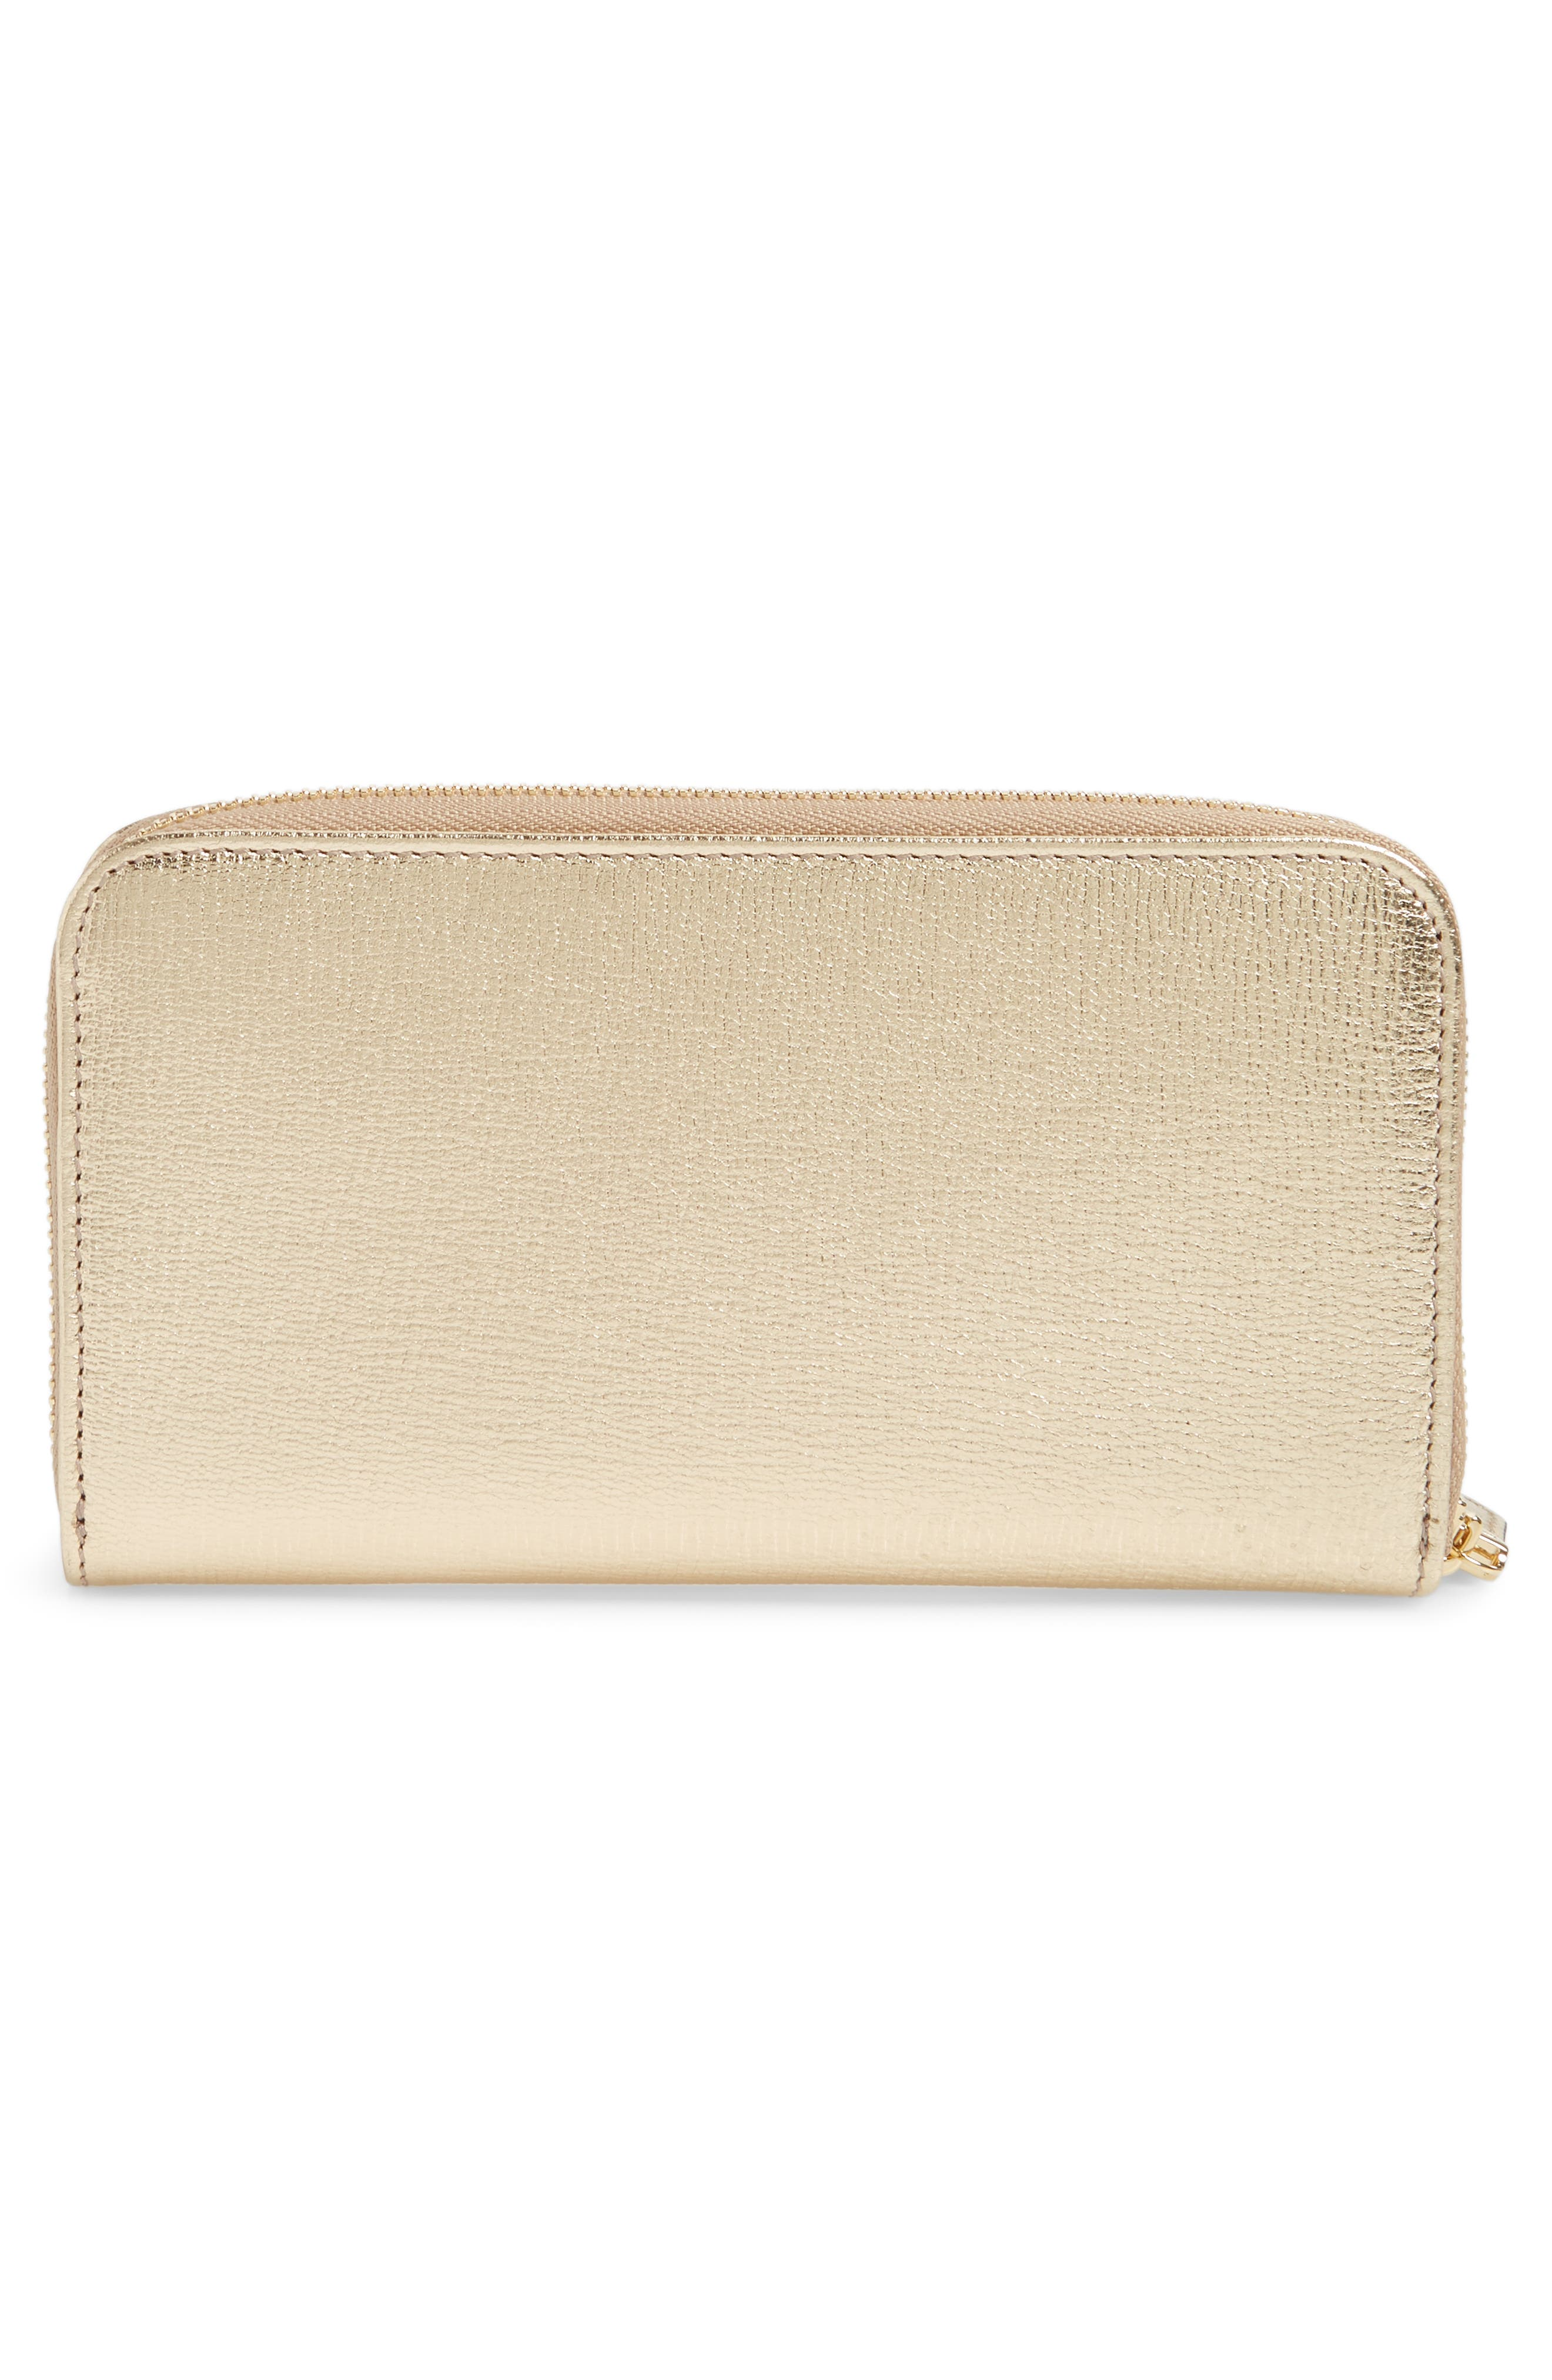 Quilted Gancio Leather Zip Around Wallet,                             Alternate thumbnail 3, color,                             GOLD METALLIC LEATHER